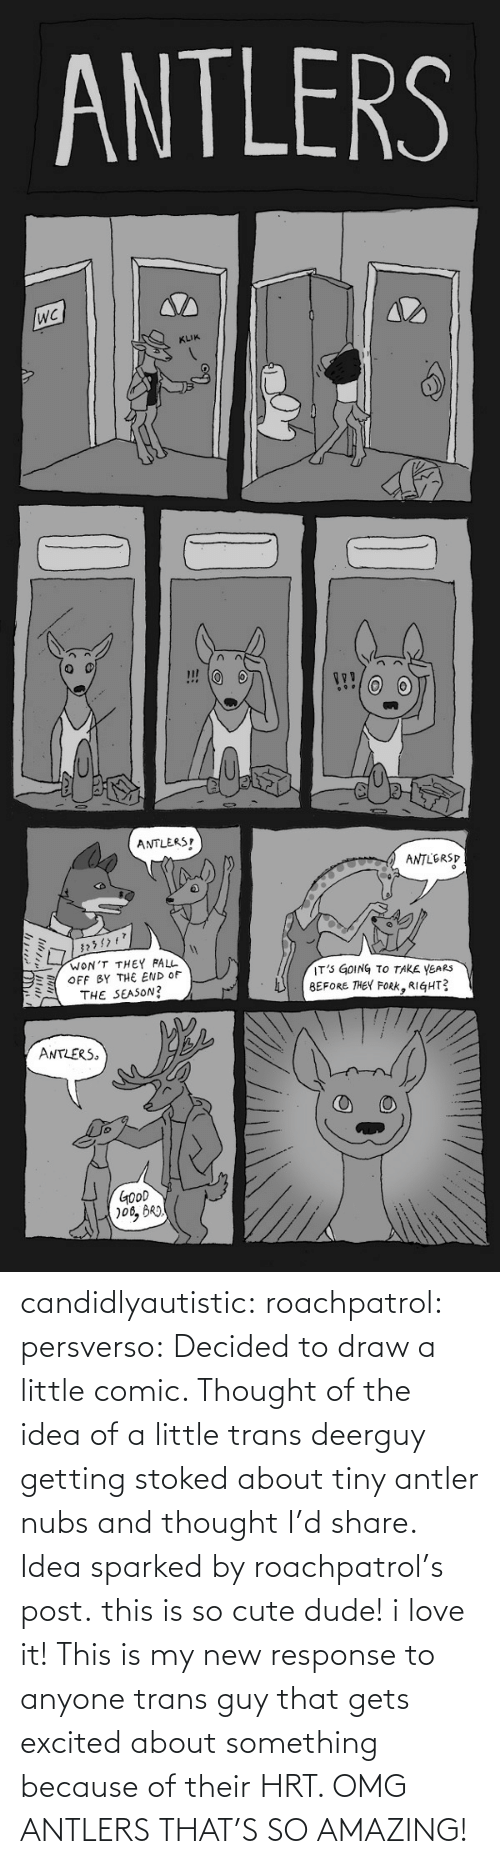 omg: ANTLERS  KLIK  ANTLERS  ANTLERSP  WON'T THEY FALL  OFF BY THE END OF  THE SEASON?  IT' GOING TO TAKE YEARS  BEFORE THEY FoRK, RIGHT?  ミ  ANTLERS  GOoD candidlyautistic: roachpatrol:  persverso:  Decided to draw a little comic. Thought of the idea of a little trans deerguy getting stoked about tiny antler nubs and thought I'd share. Idea sparked by roachpatrol's post.  this is so cute dude! i love it!  This is my new response to anyone trans guy that gets excited about something because of their HRT. OMG ANTLERS THAT'S SO AMAZING!